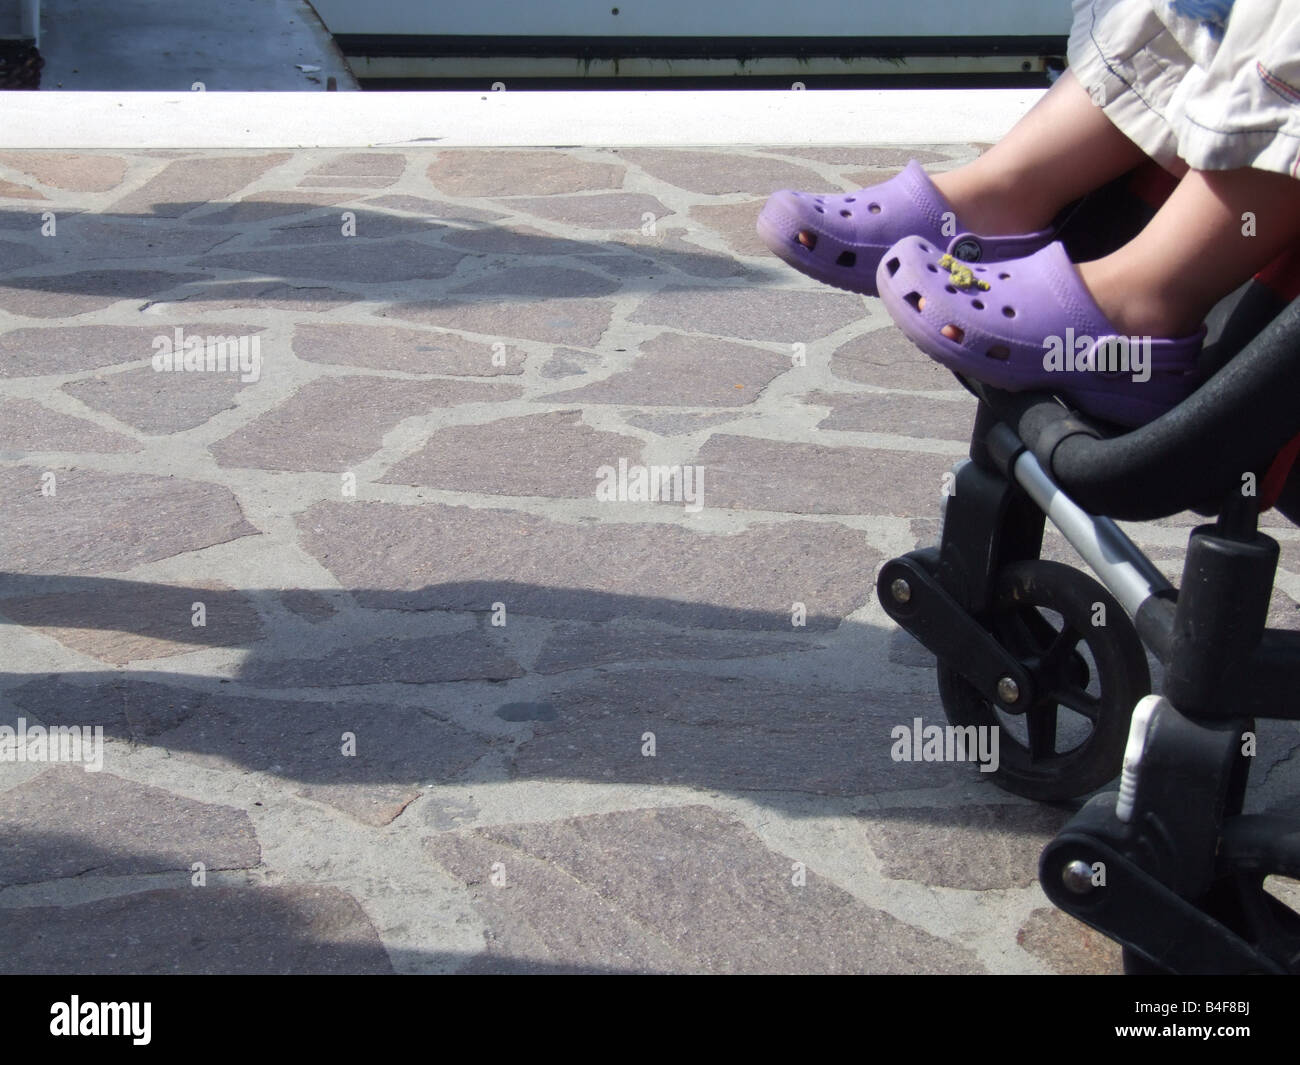 ea251922b437 Kid wearing Crocs shoes. B44WF1 (RM). child wearing crocs type sandals in  pram on street - Stock Image